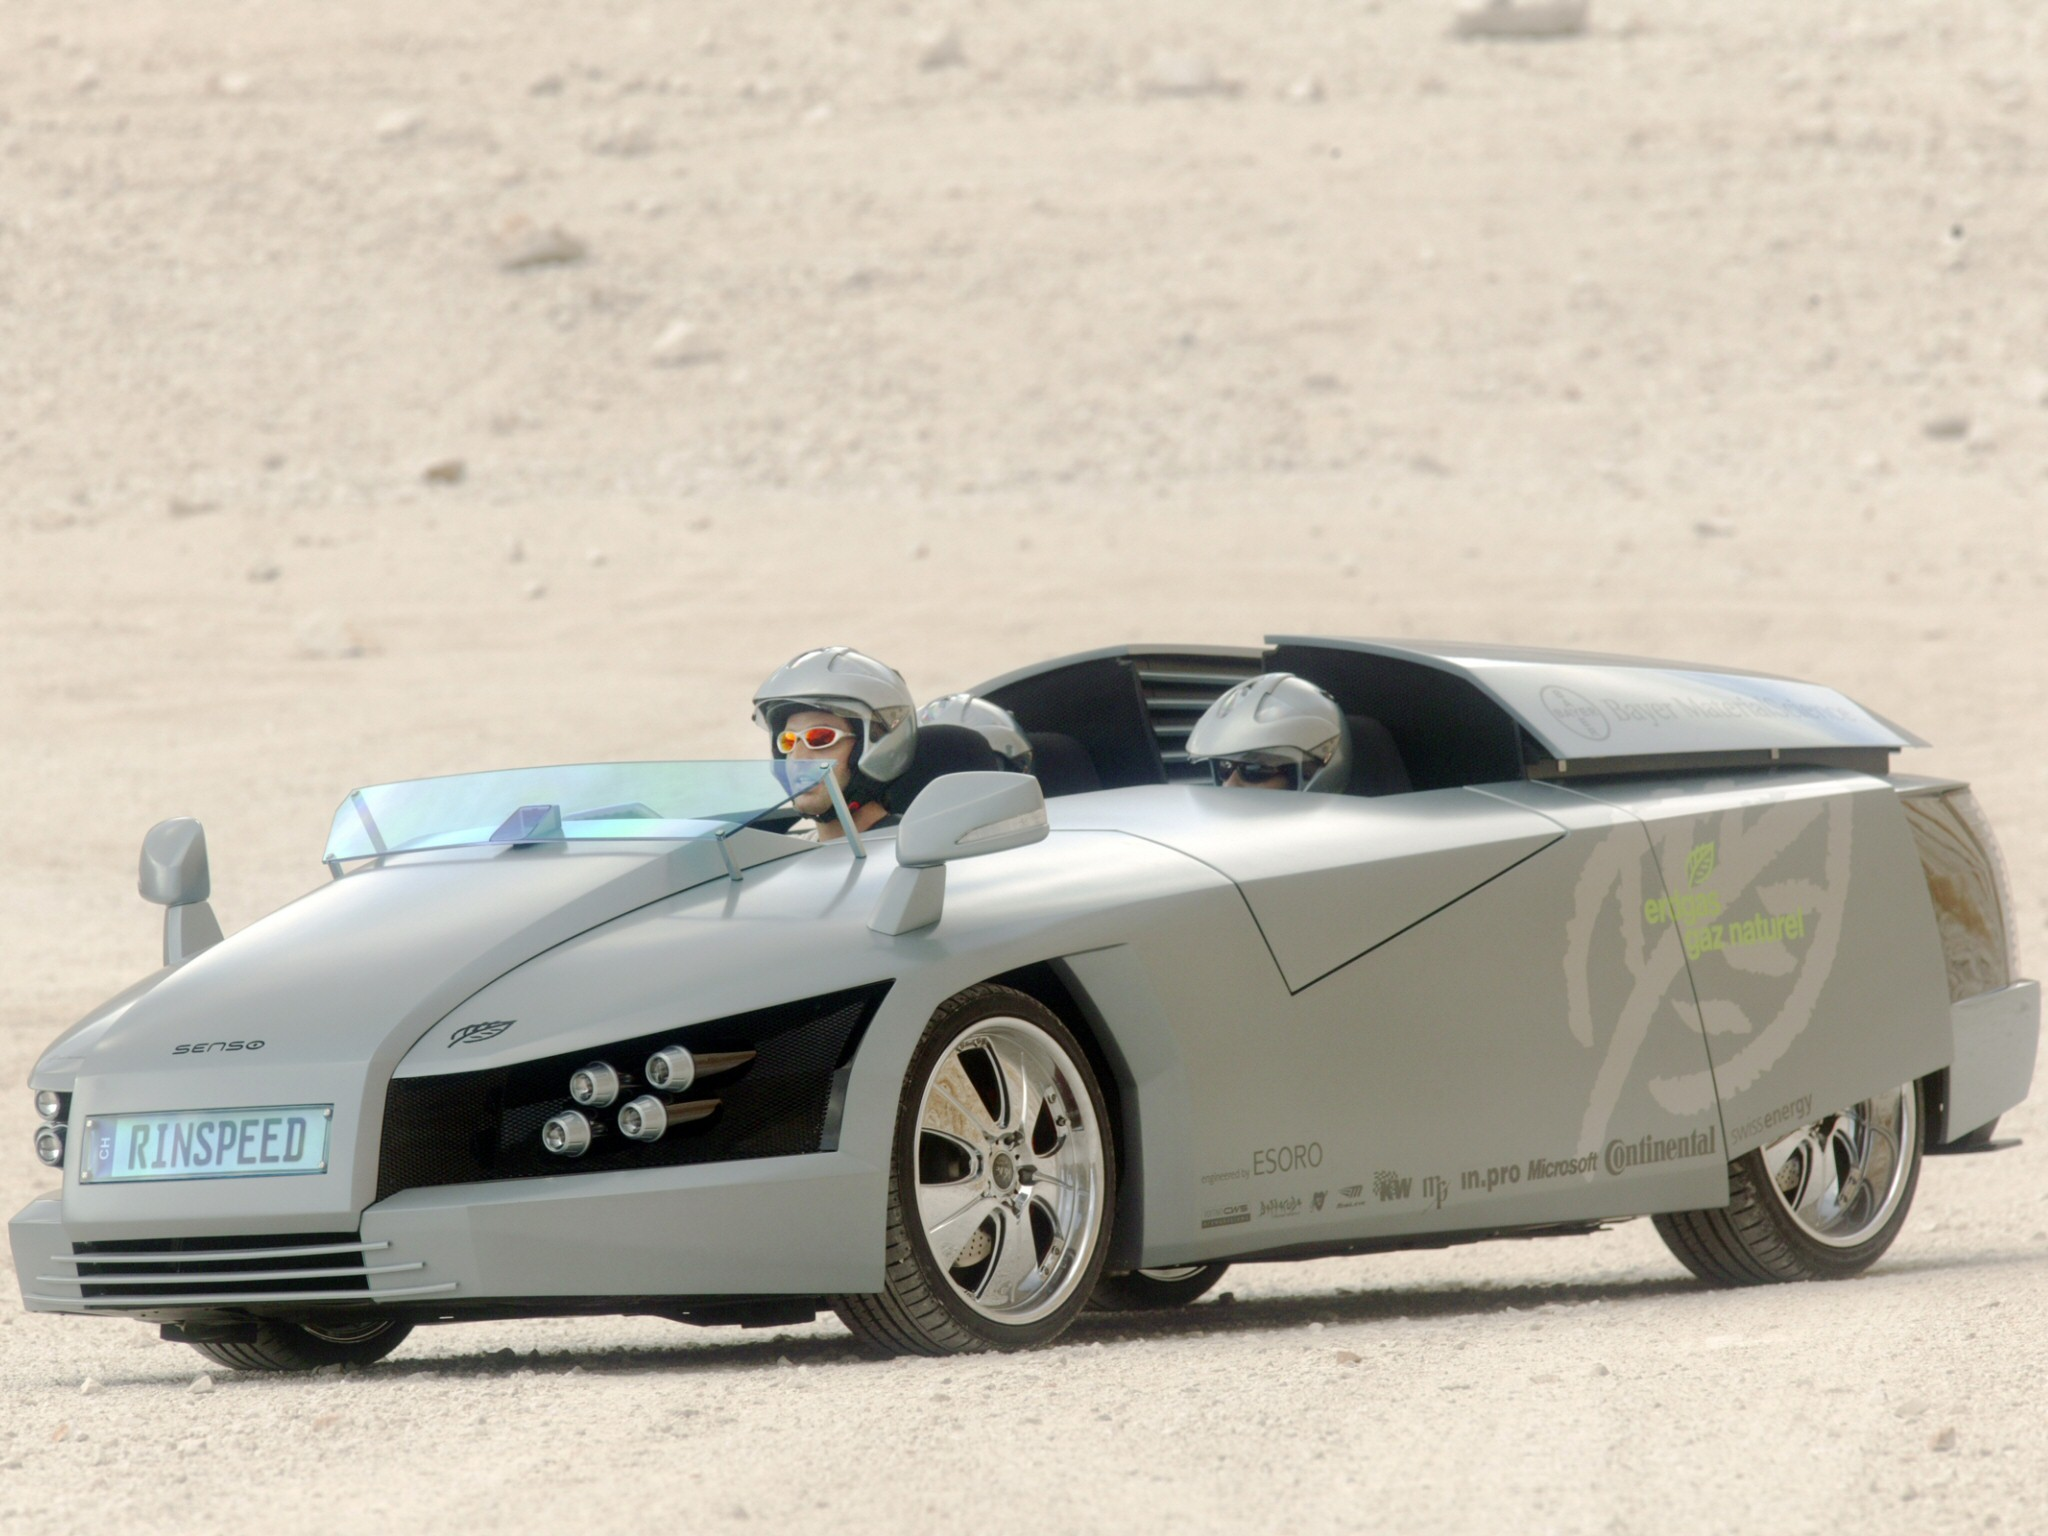 2005 Rinspeed Senso Concept